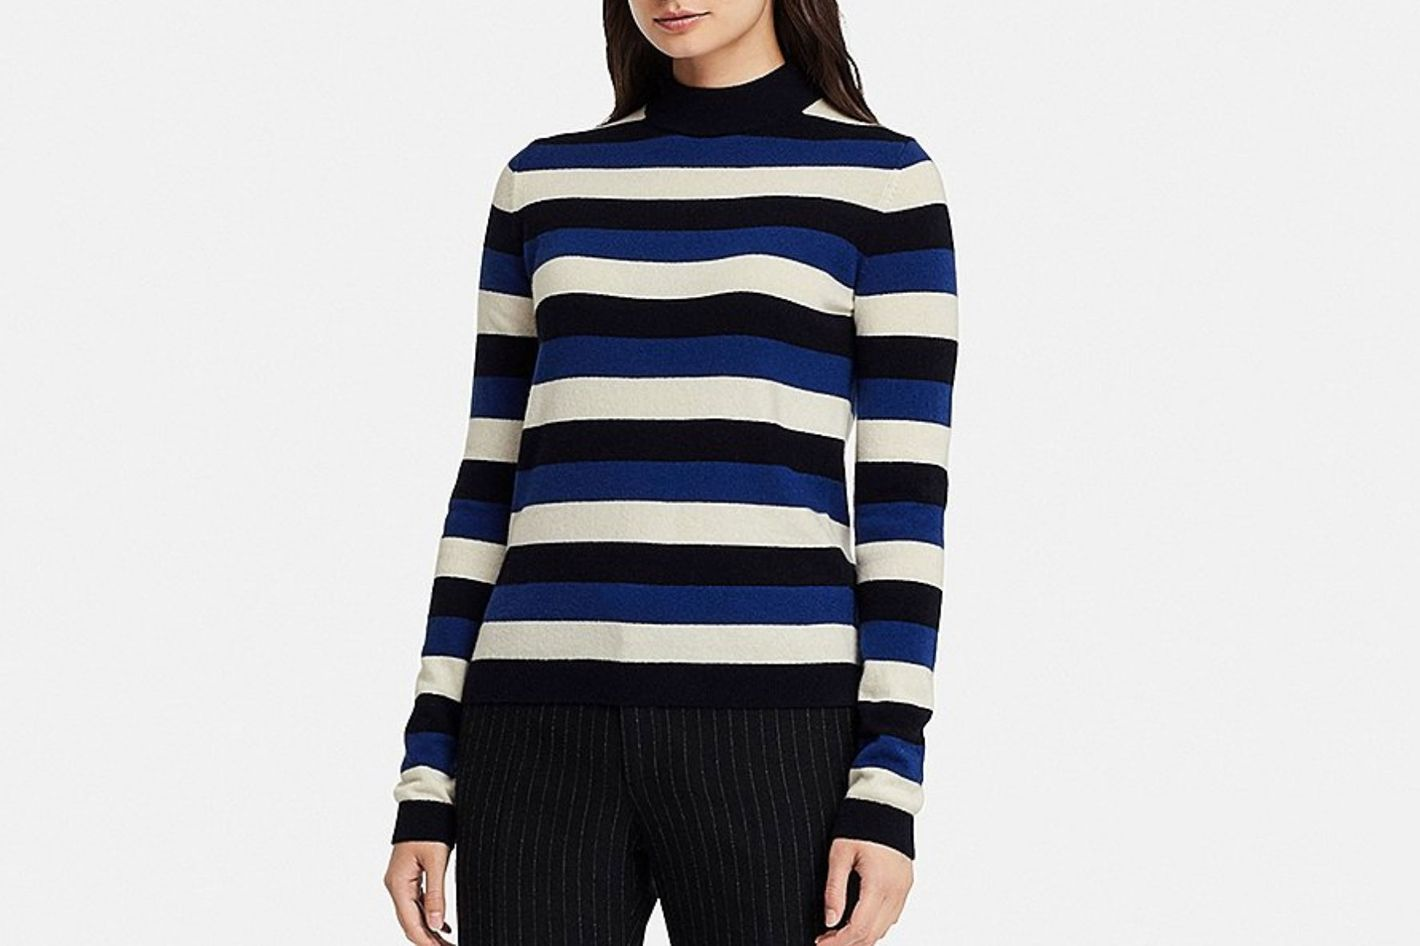 758dd5d8fdf Who Makes the Best Cheap Cashmere Sweater